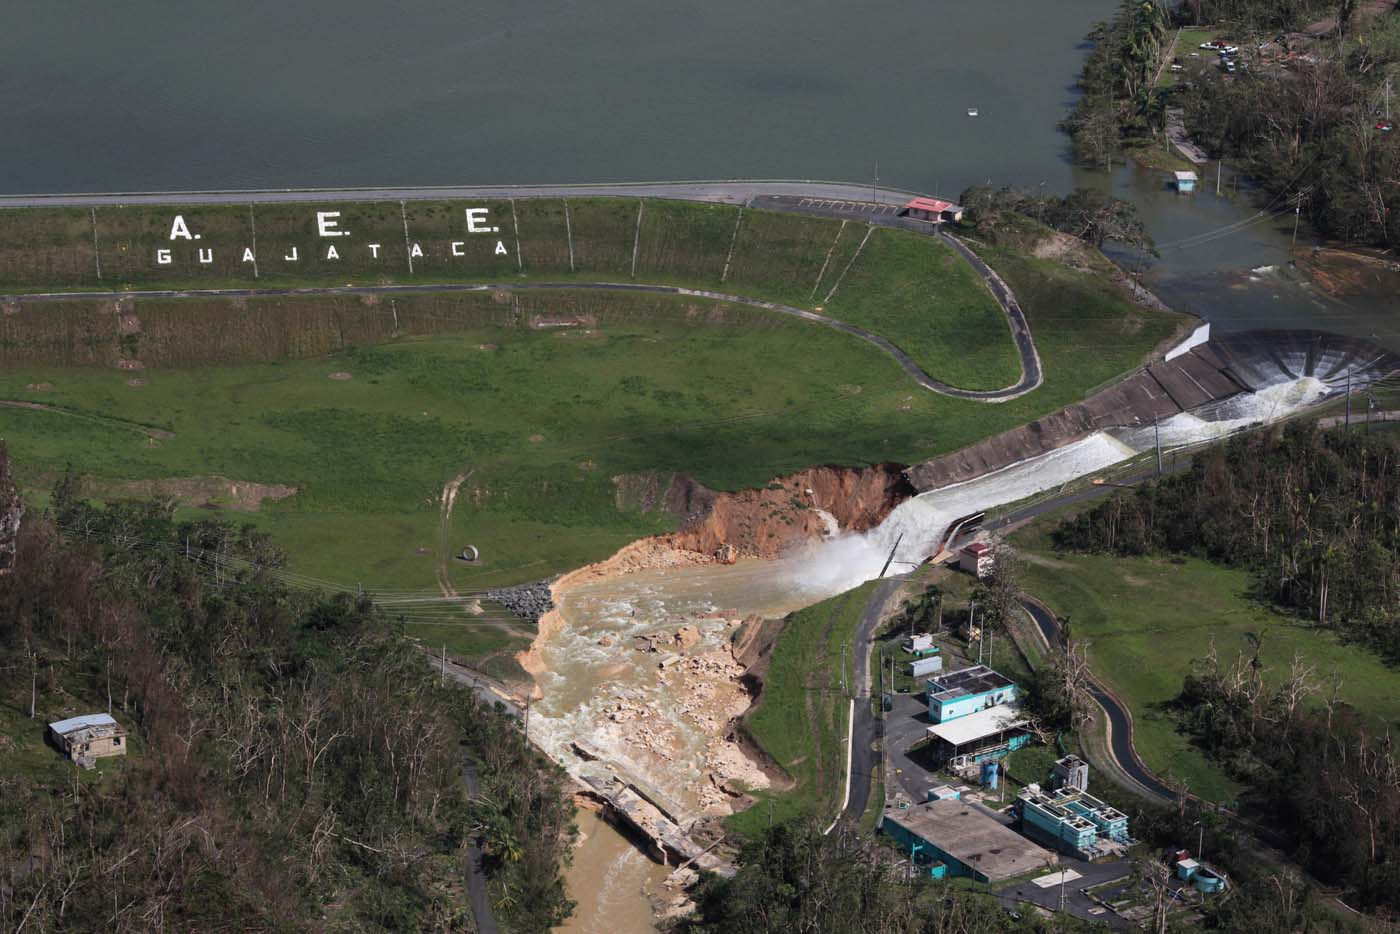 An aerial view shows damage to the Guajataca dam in the aftermath of Hurricane Maria, in Quebradillas, Puerto Rico September 23, 2017. REUTERS/Alvin Baez